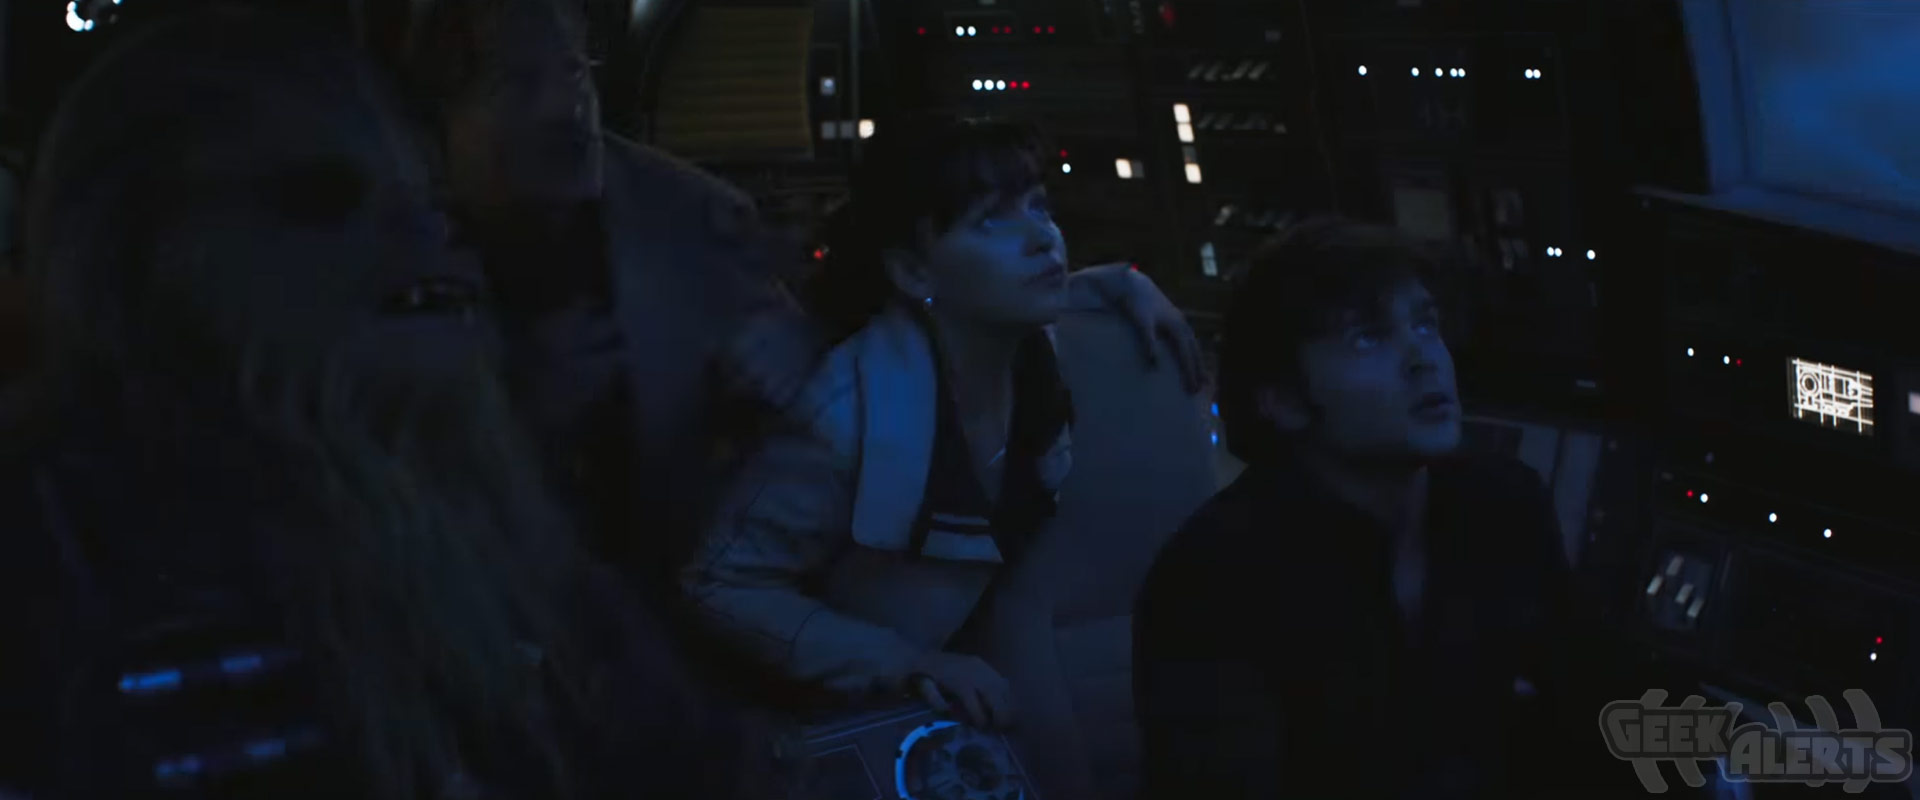 Solo: A Star Wars Story Official Teaser Trailer - photo#22